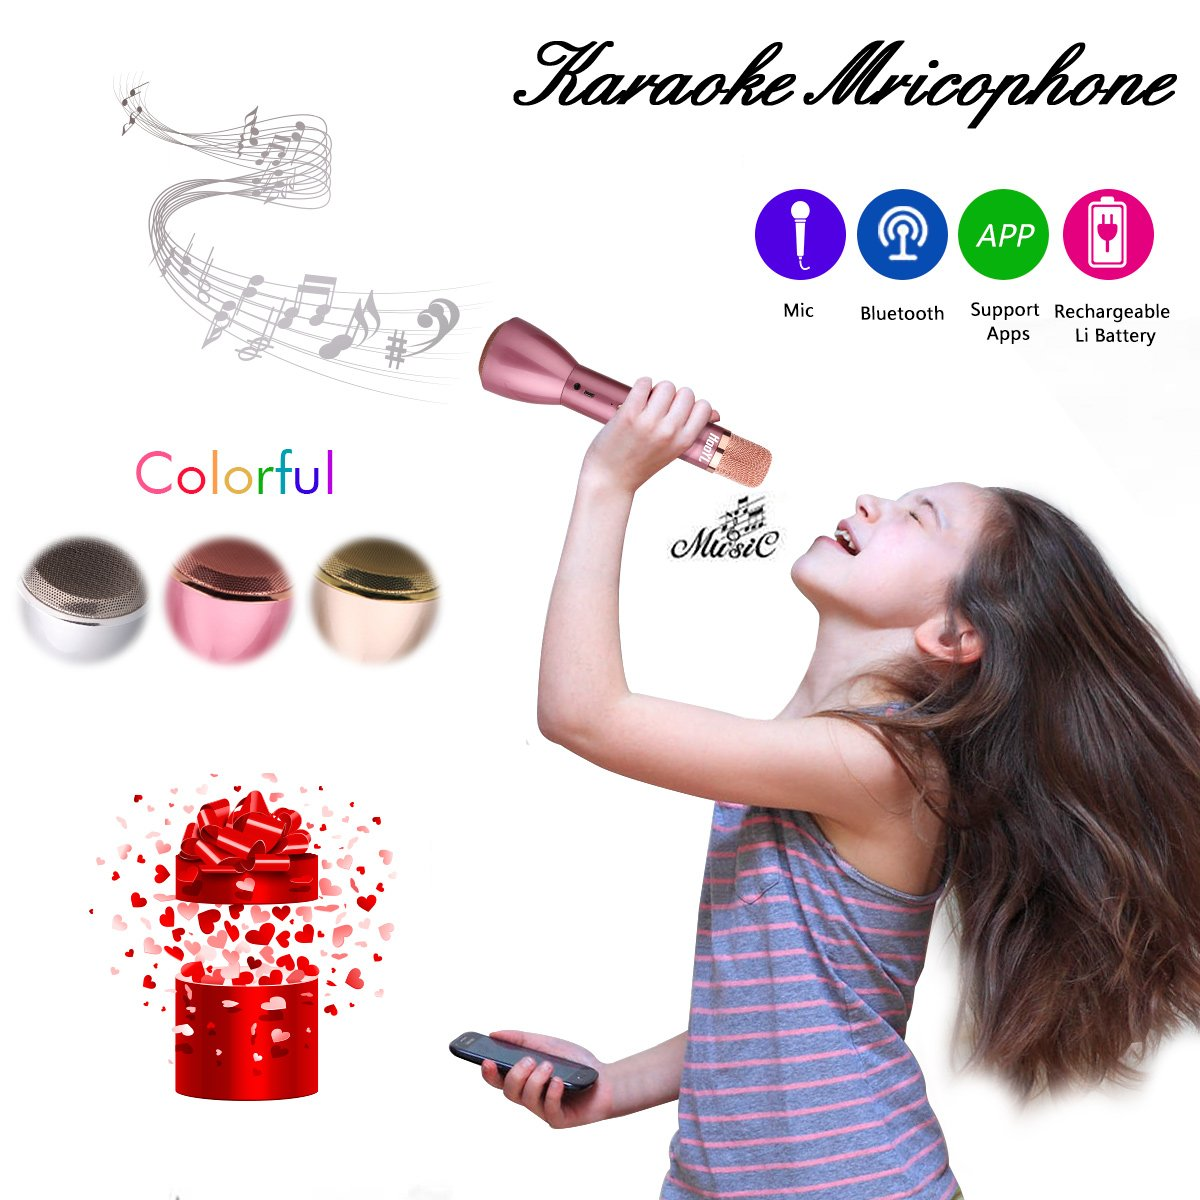 Microphone for Kids - Portable Wireless Microphone Karaoke with Bluetooth Speakers for Music Playing and Singing Anytime Anywhere - Support IPhone/Android IOS Smartphone/Tablet Compatible Rose Gold